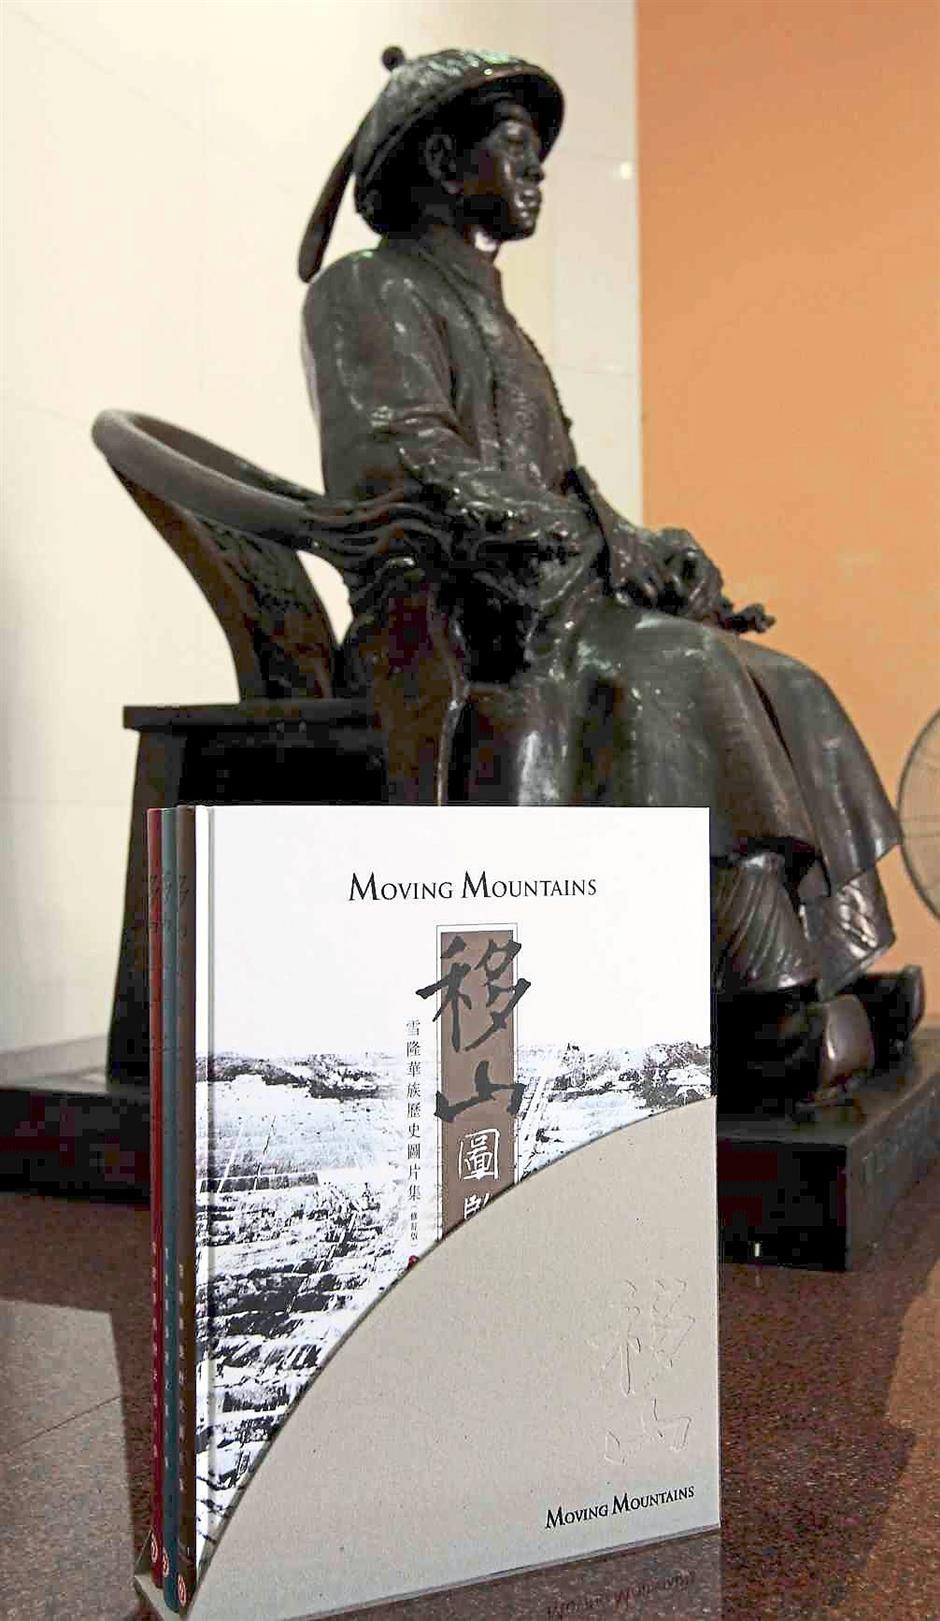 A massive project: 'Moving Mountains: A Pictorial History' of the Chinese in Selangor and KL involves four years of extensive research but the collection of photographs started about 20 years ago. In the background is a statue of one of Kuala Lumpur's founding fathers, Yap Ah Loy.